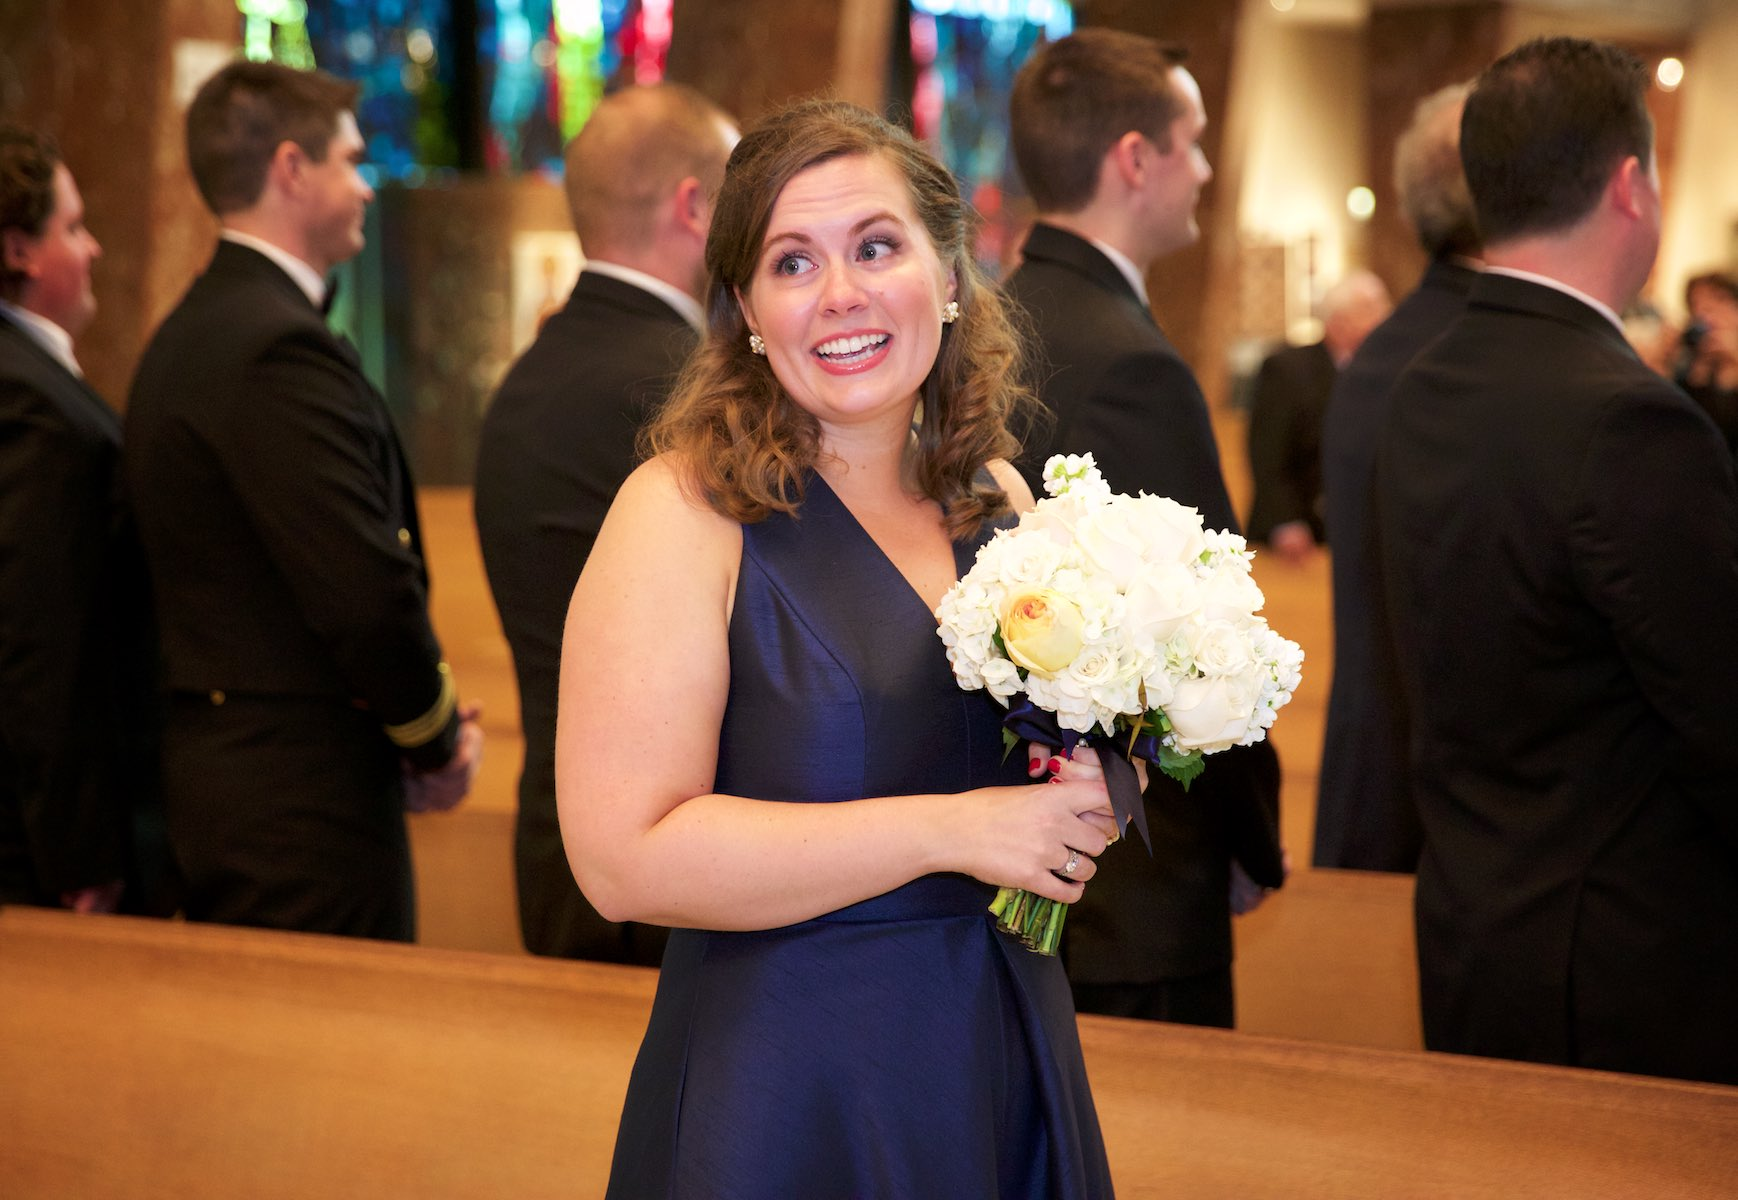 Daniel's sister (and his honor attendant) watches as her brother reacts to the bride coming down the aisle, ceremony at St. Rita of Cascia Shrine Chapel in Chicago. Wedding photography by Steve & Tiffany Warmowski